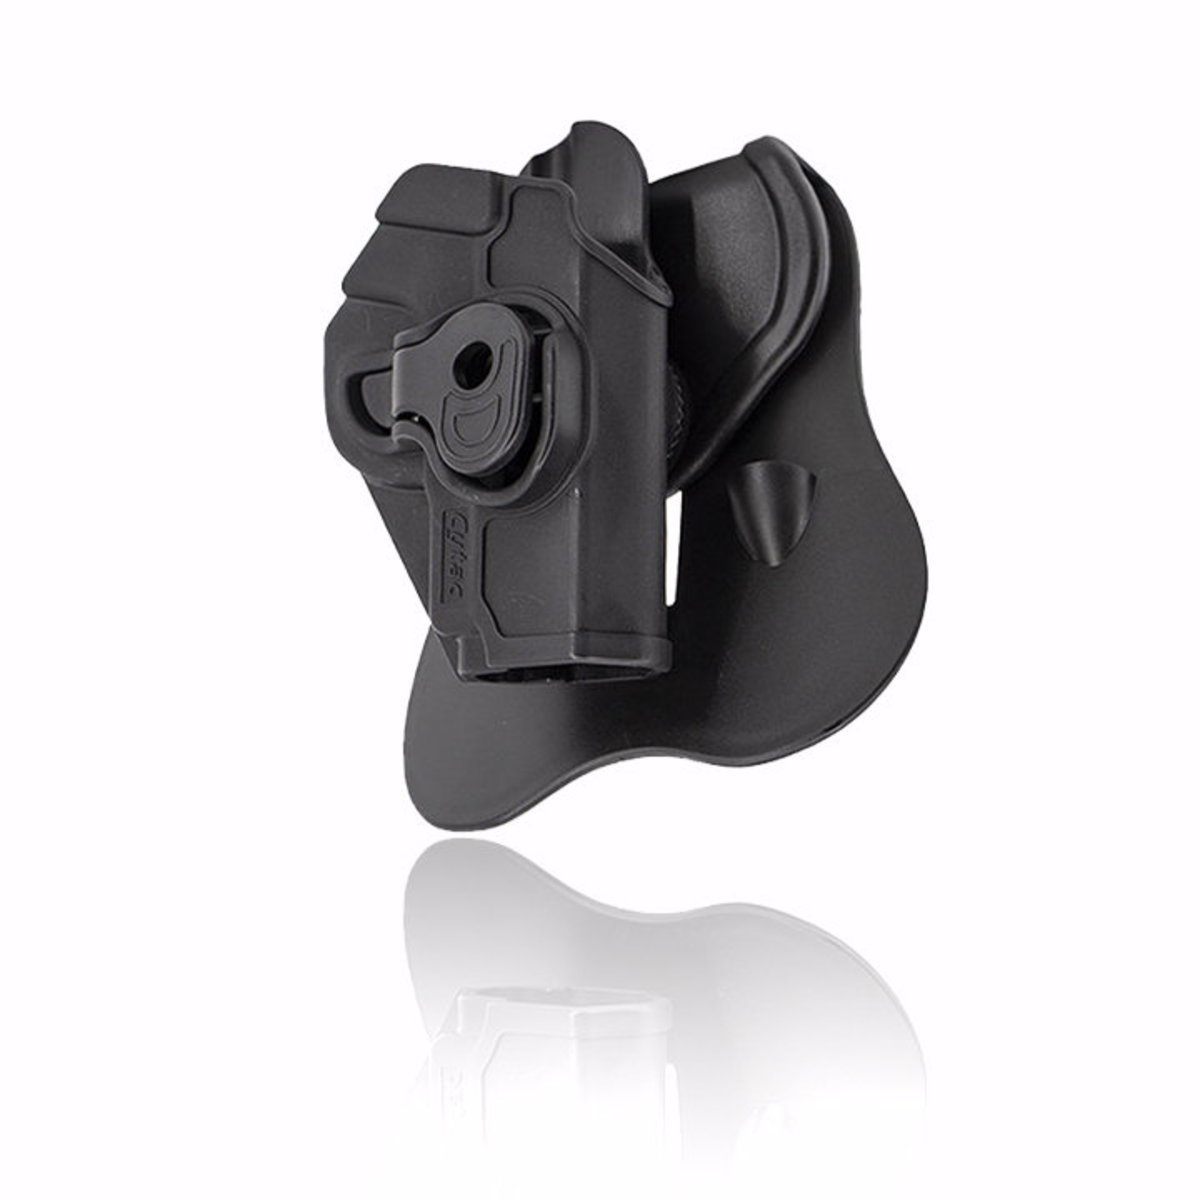 View larger image of Cytac OWB Holster - Fits Sig Sauer P220, P225, P226, P228, P229, Norinco NP22